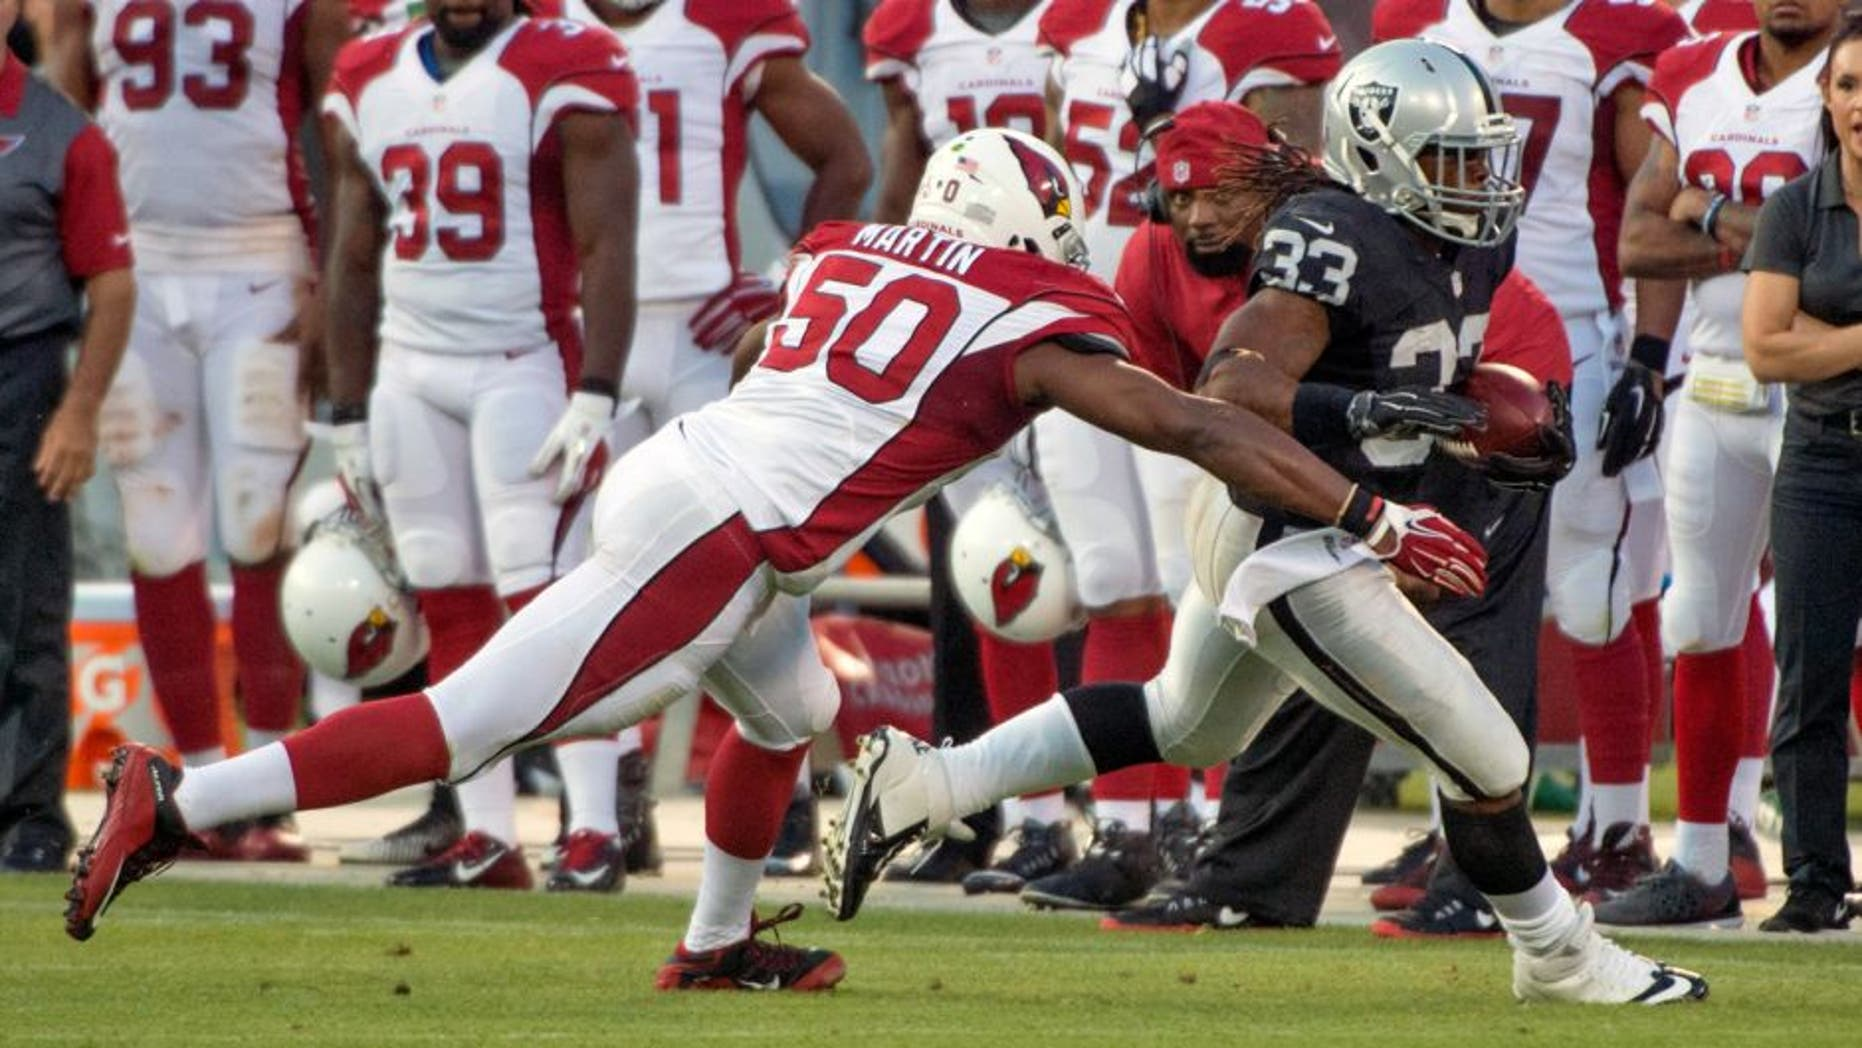 August 30, 2015; Oakland, CA, USA; Oakland Raiders running back Trent Richardson (33) runs with the ball against Arizona Cardinals linebacker Gabe Martin (50) during the third quarter in a preseason NFL football game at O.co Coliseum. The Cardinals defeated the Raiders 30-23. Mandatory Credit: Kyle Terada-USA TODAY Sports